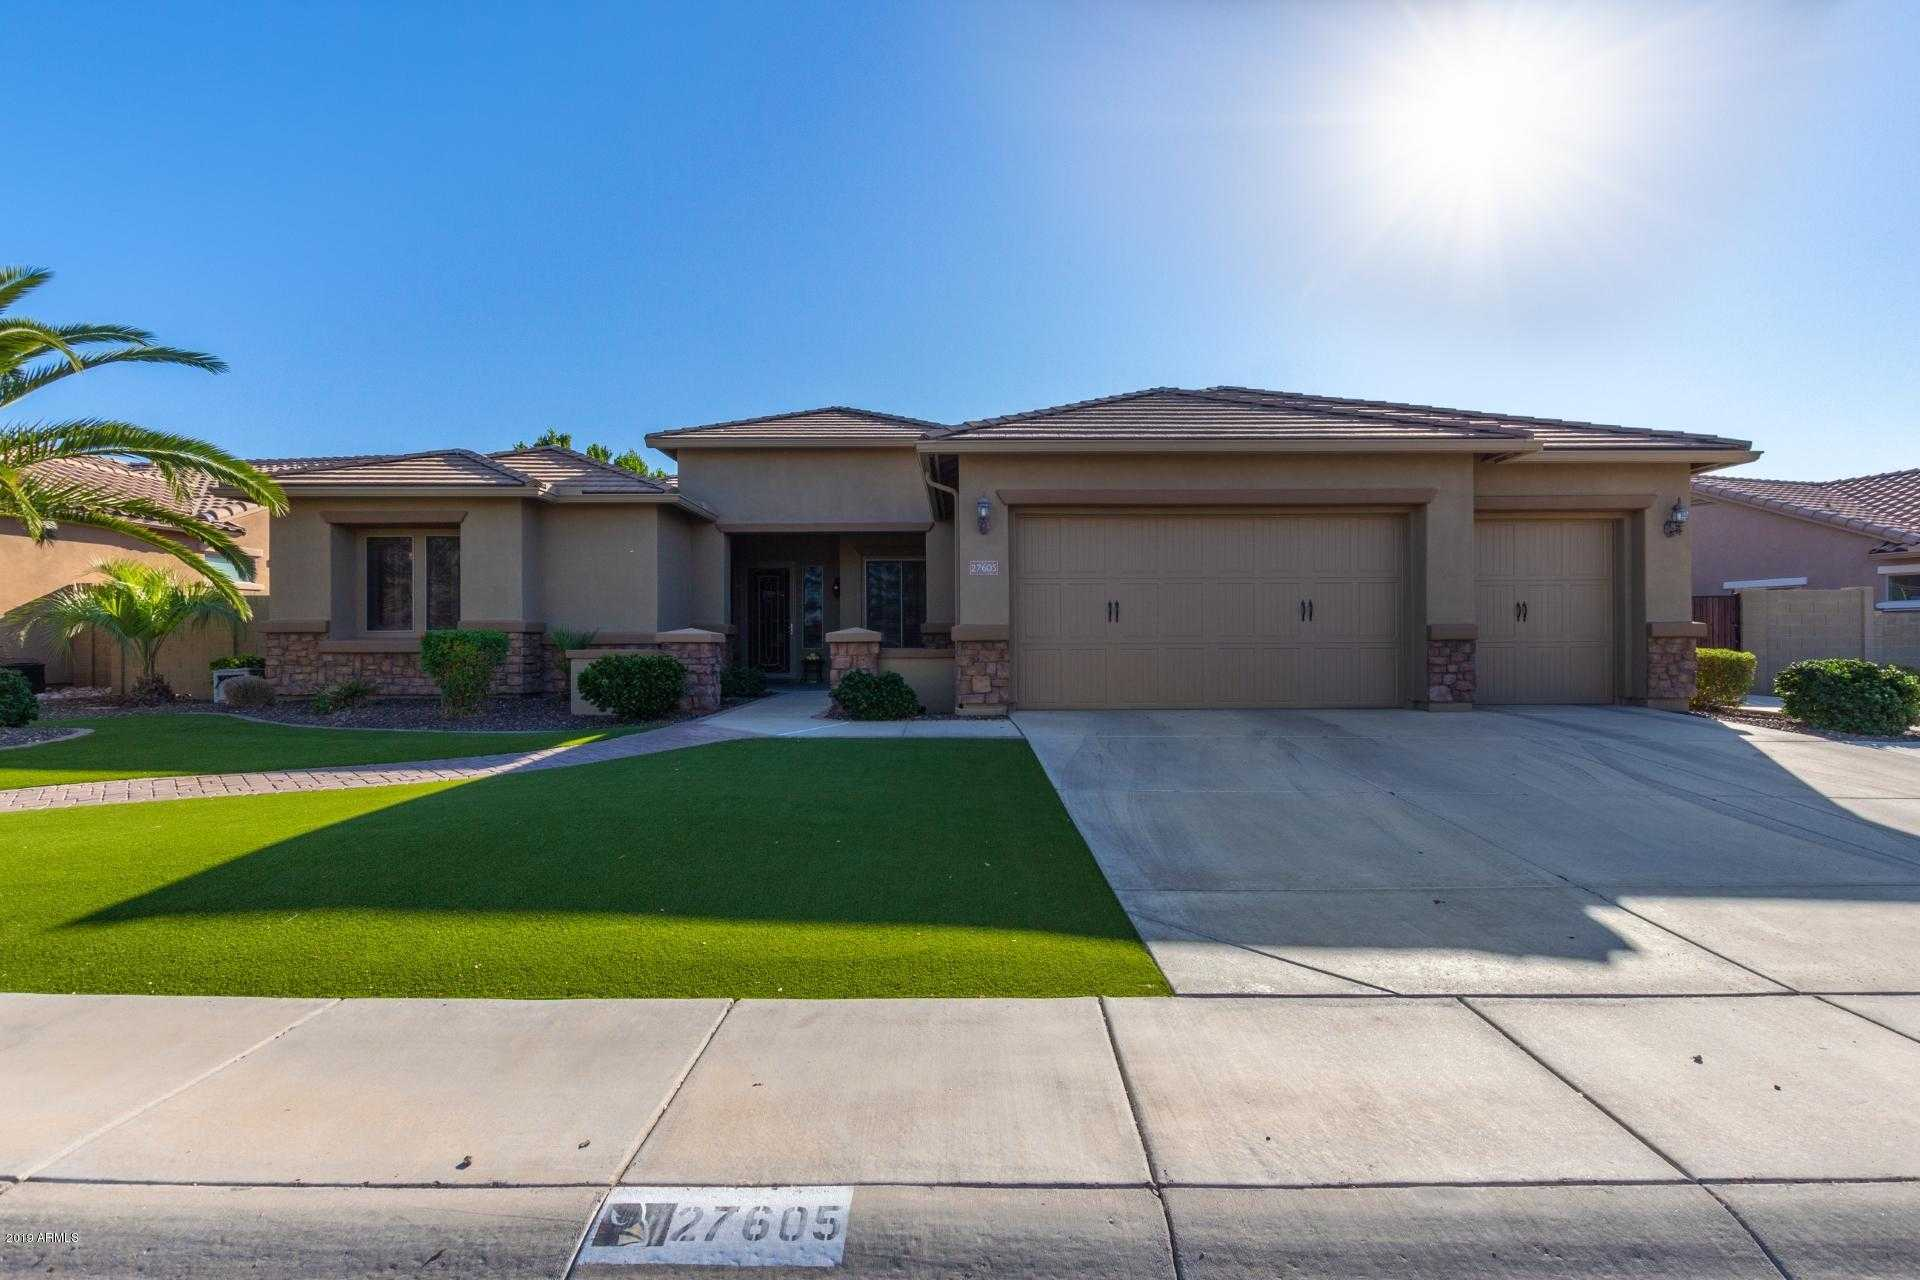 $539,900 - 4Br/3Ba - Home for Sale in Stetson Valley Parcels 30 31 32 33, Phoenix